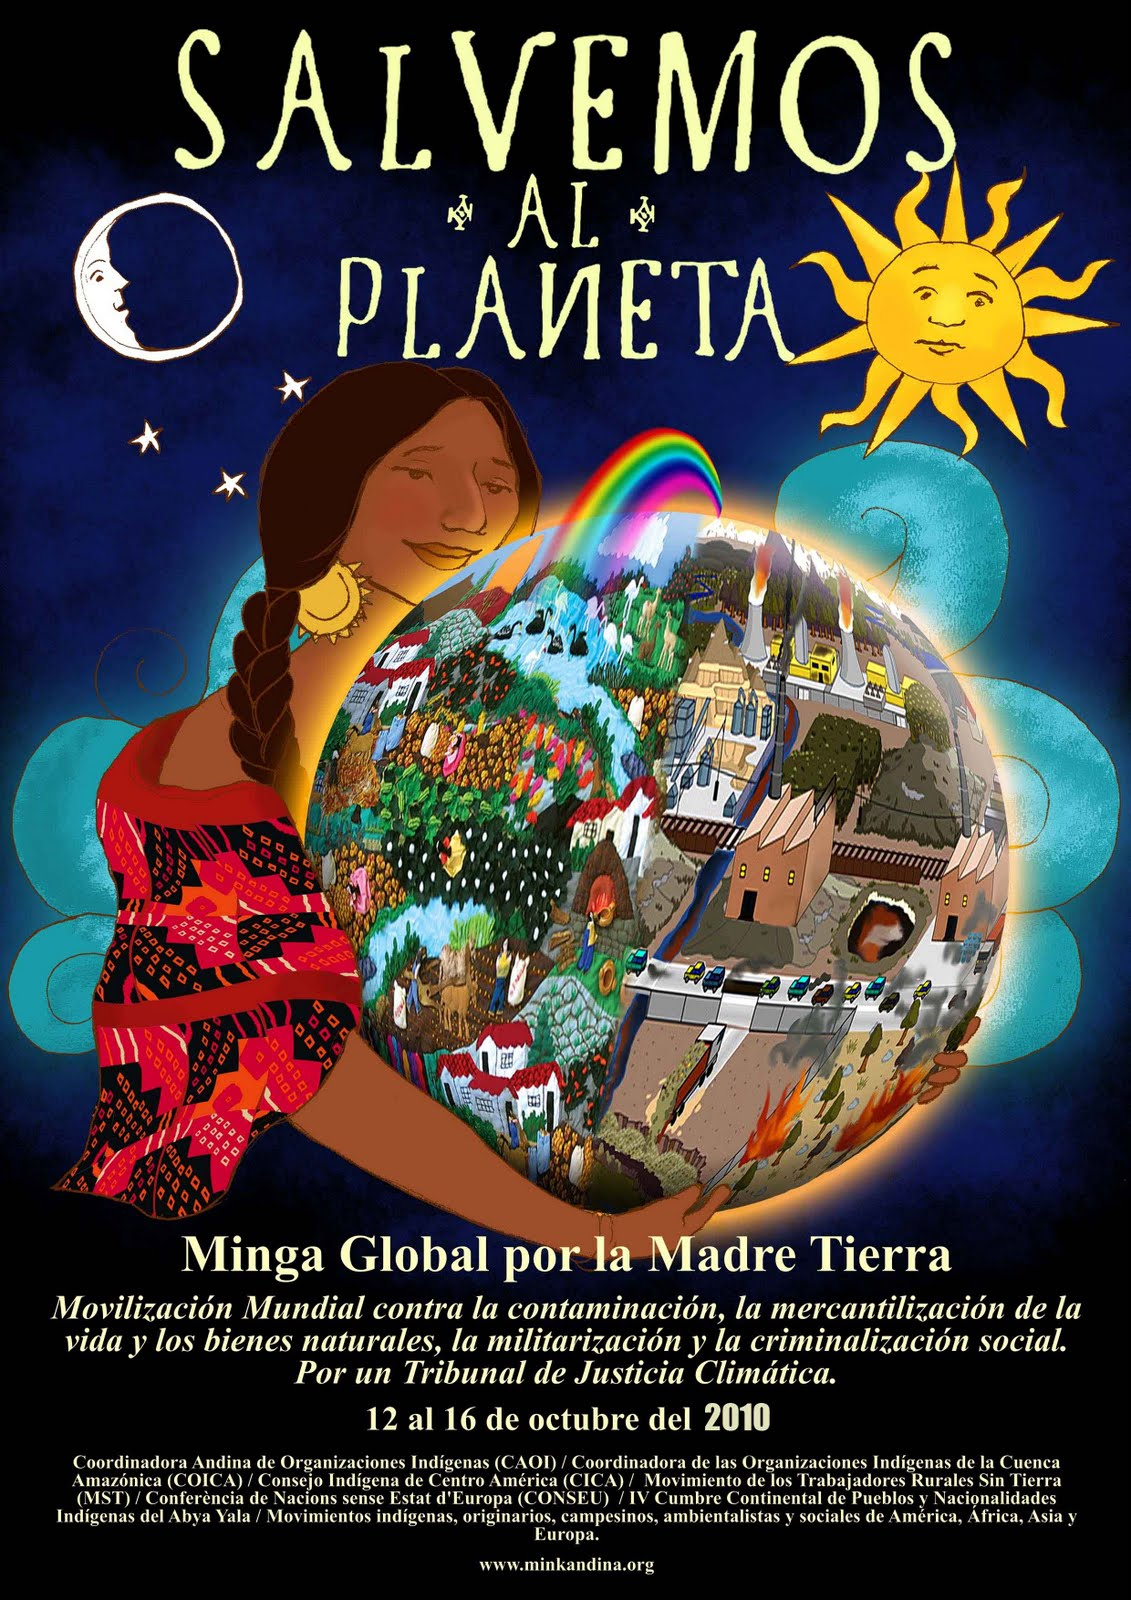 https://i0.wp.com/intercontinentalcry.org/wp-content/uploads/October-12-2010-Global-Minga-in-Defense-of-Mother-Earth-and-Climate-and-Environmental-Justice.jpg